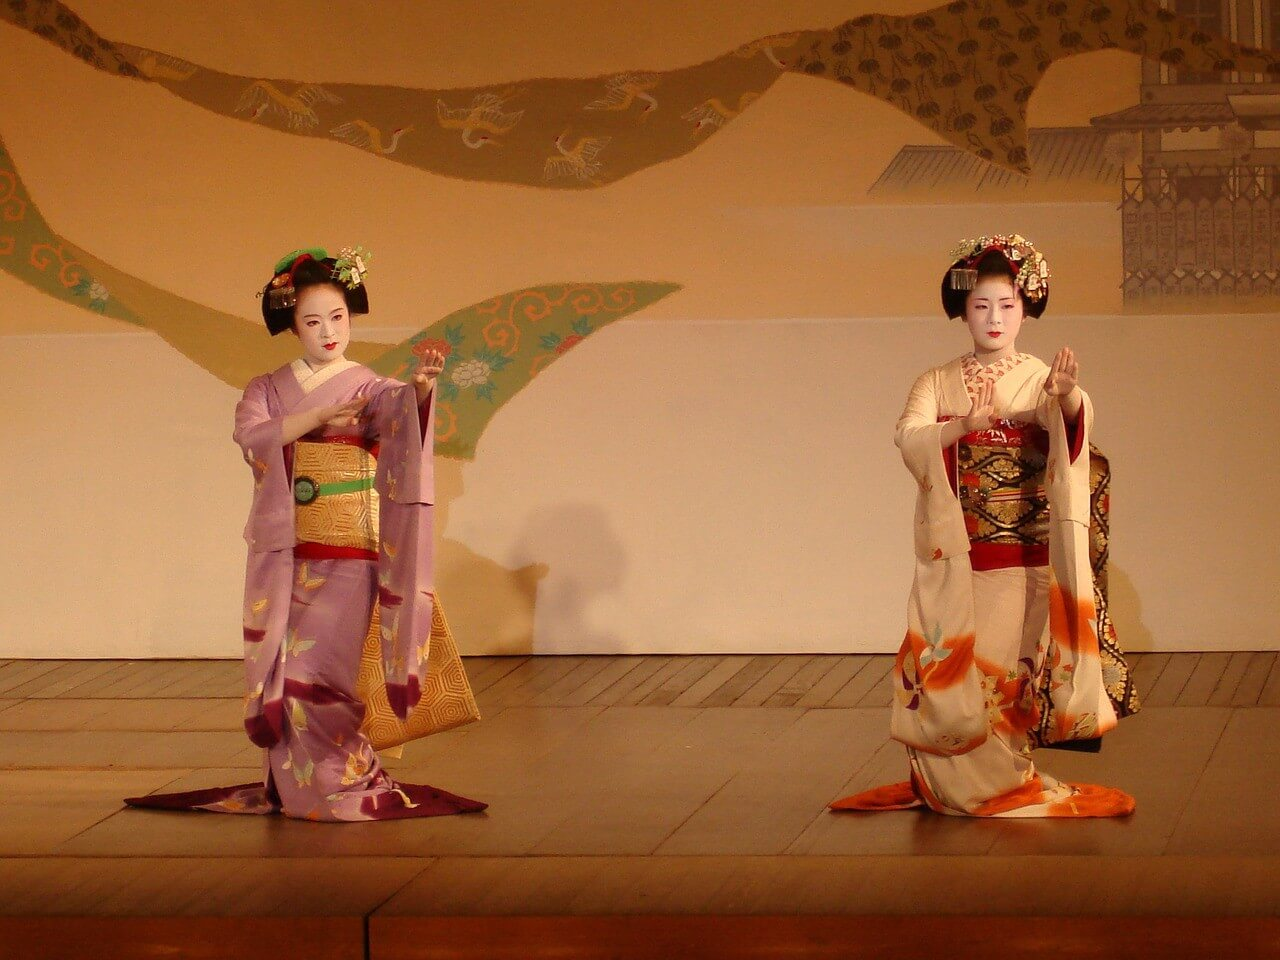 Geisha girls dancing on a stage